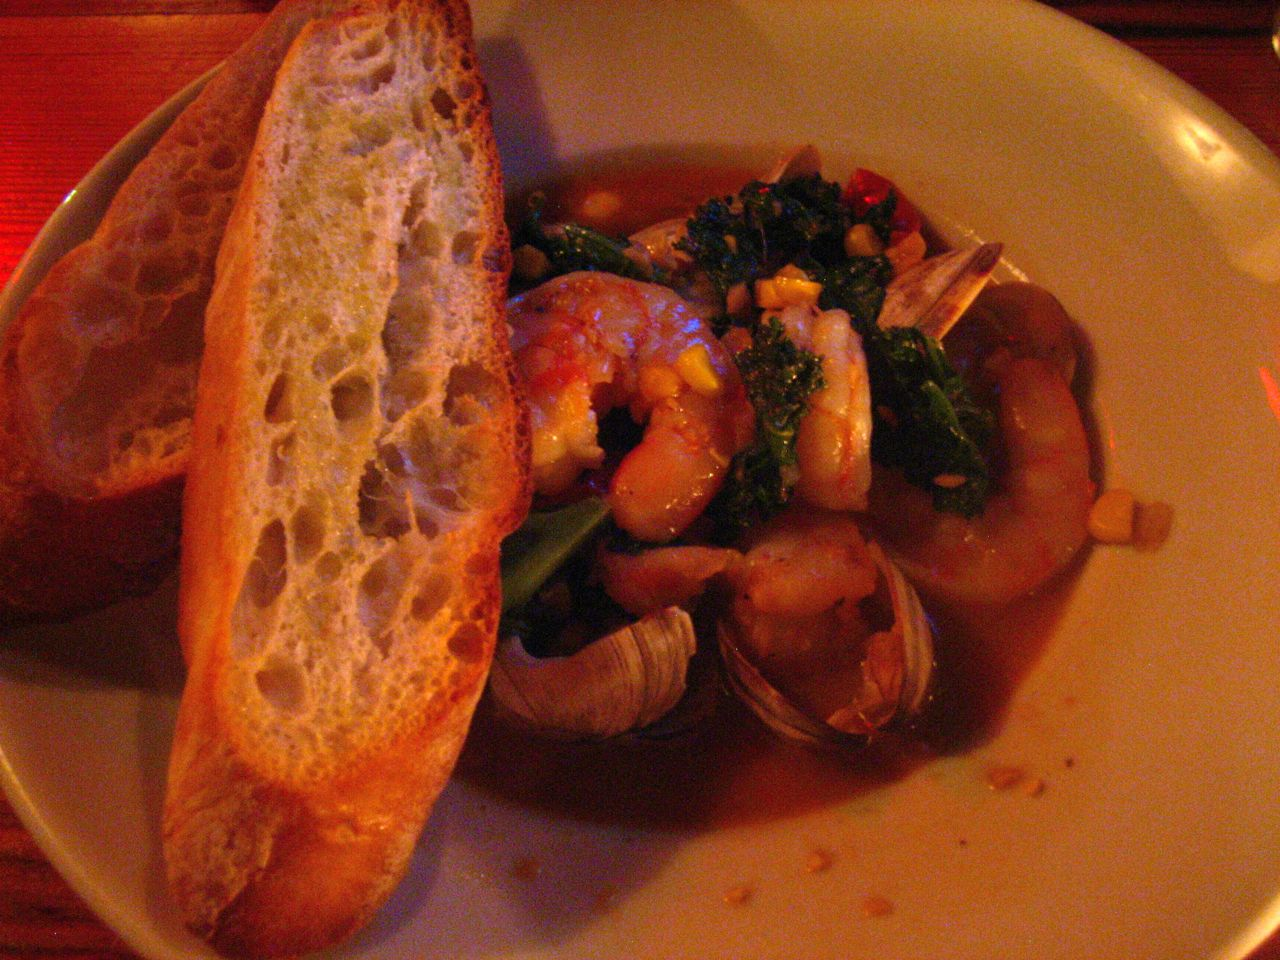 Slyvain's: Gulf shrimp and littleneck clams with ham hock broth. AMAZING.